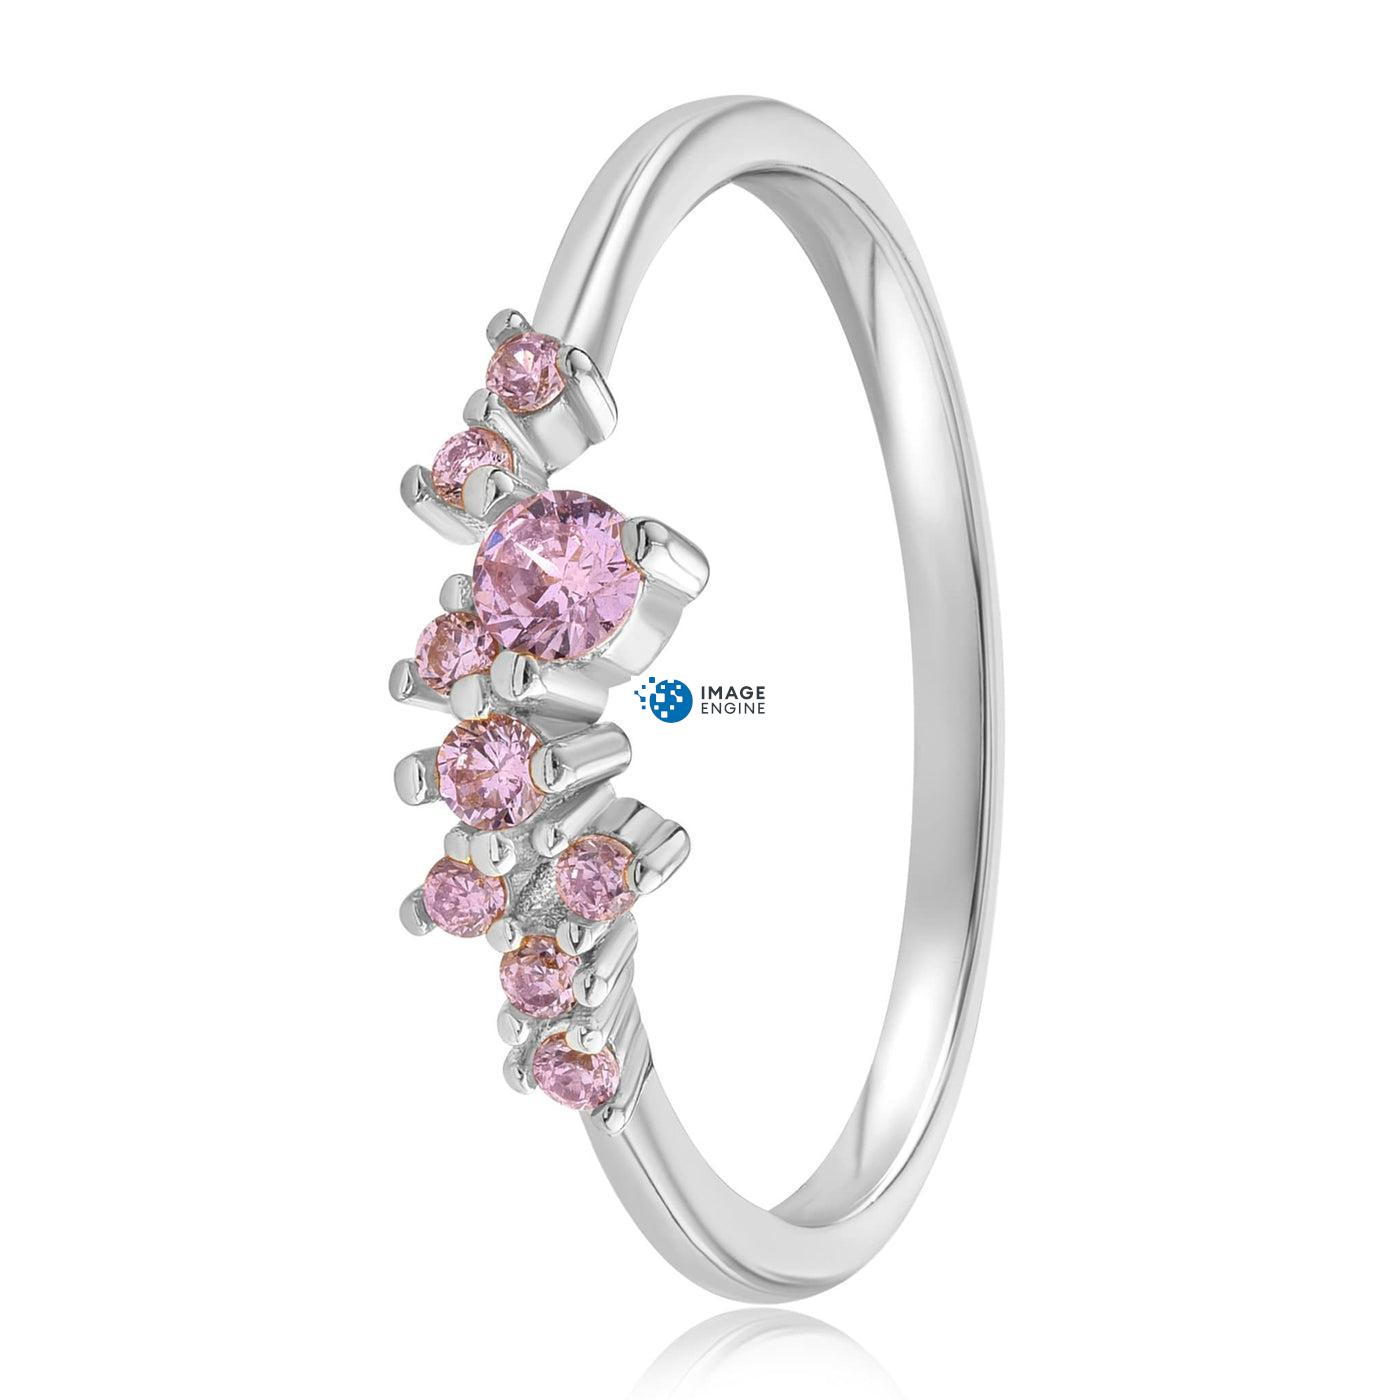 Rose Quartz Cluster Ring - Side View - 925 Sterling Silver